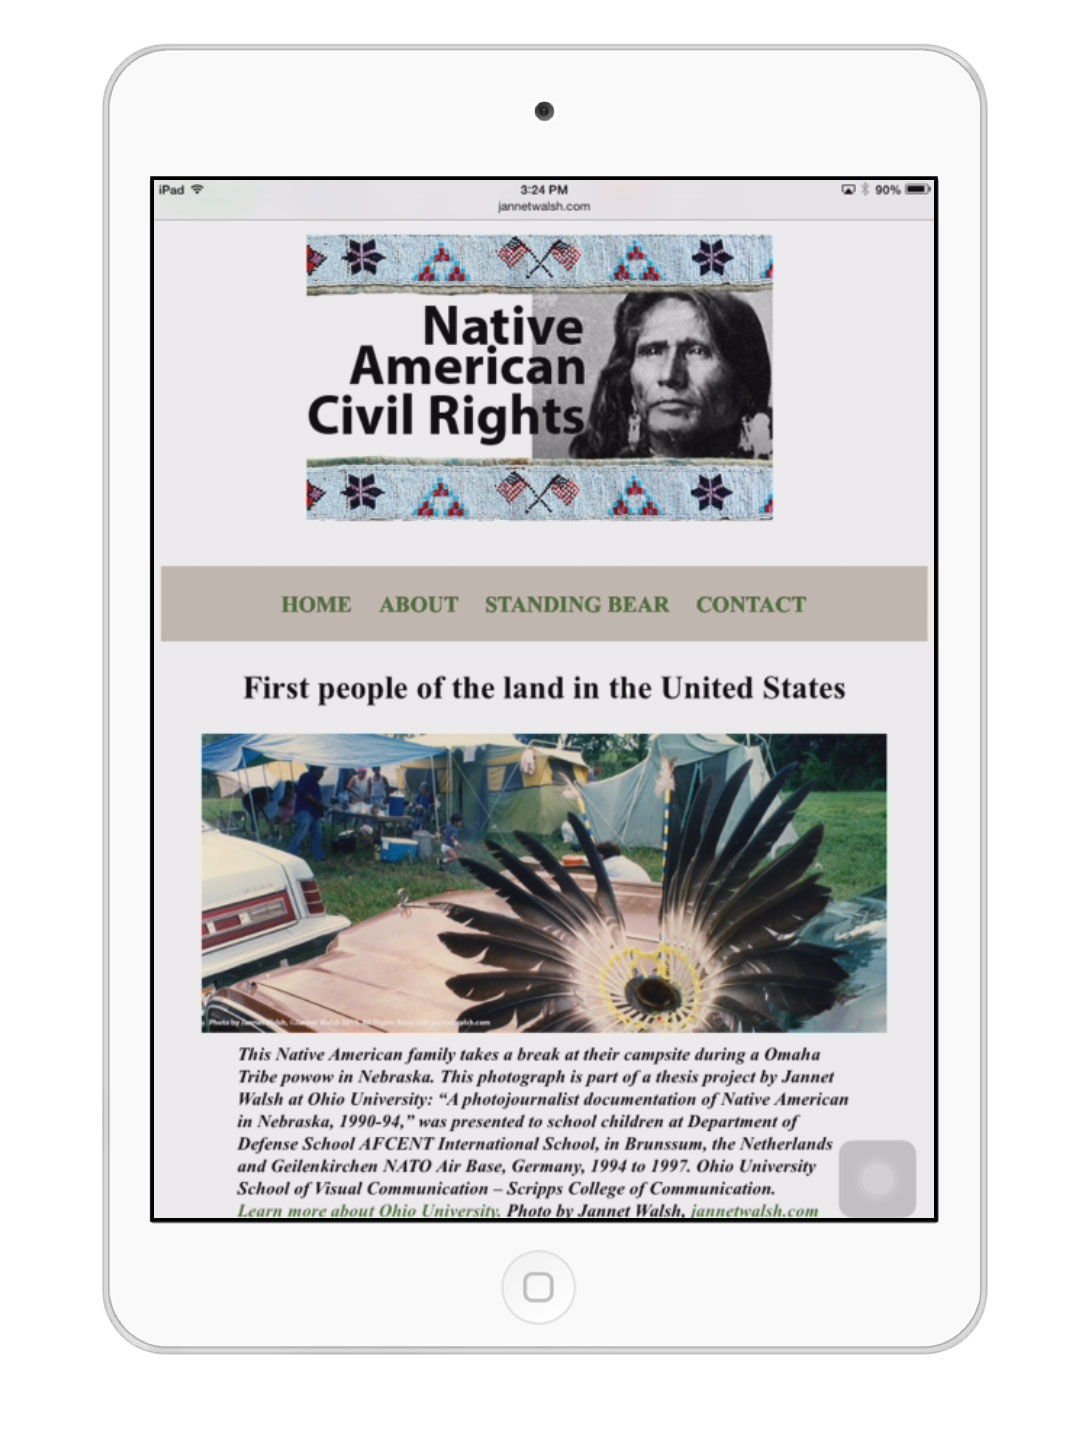 Native American Civil Rights website